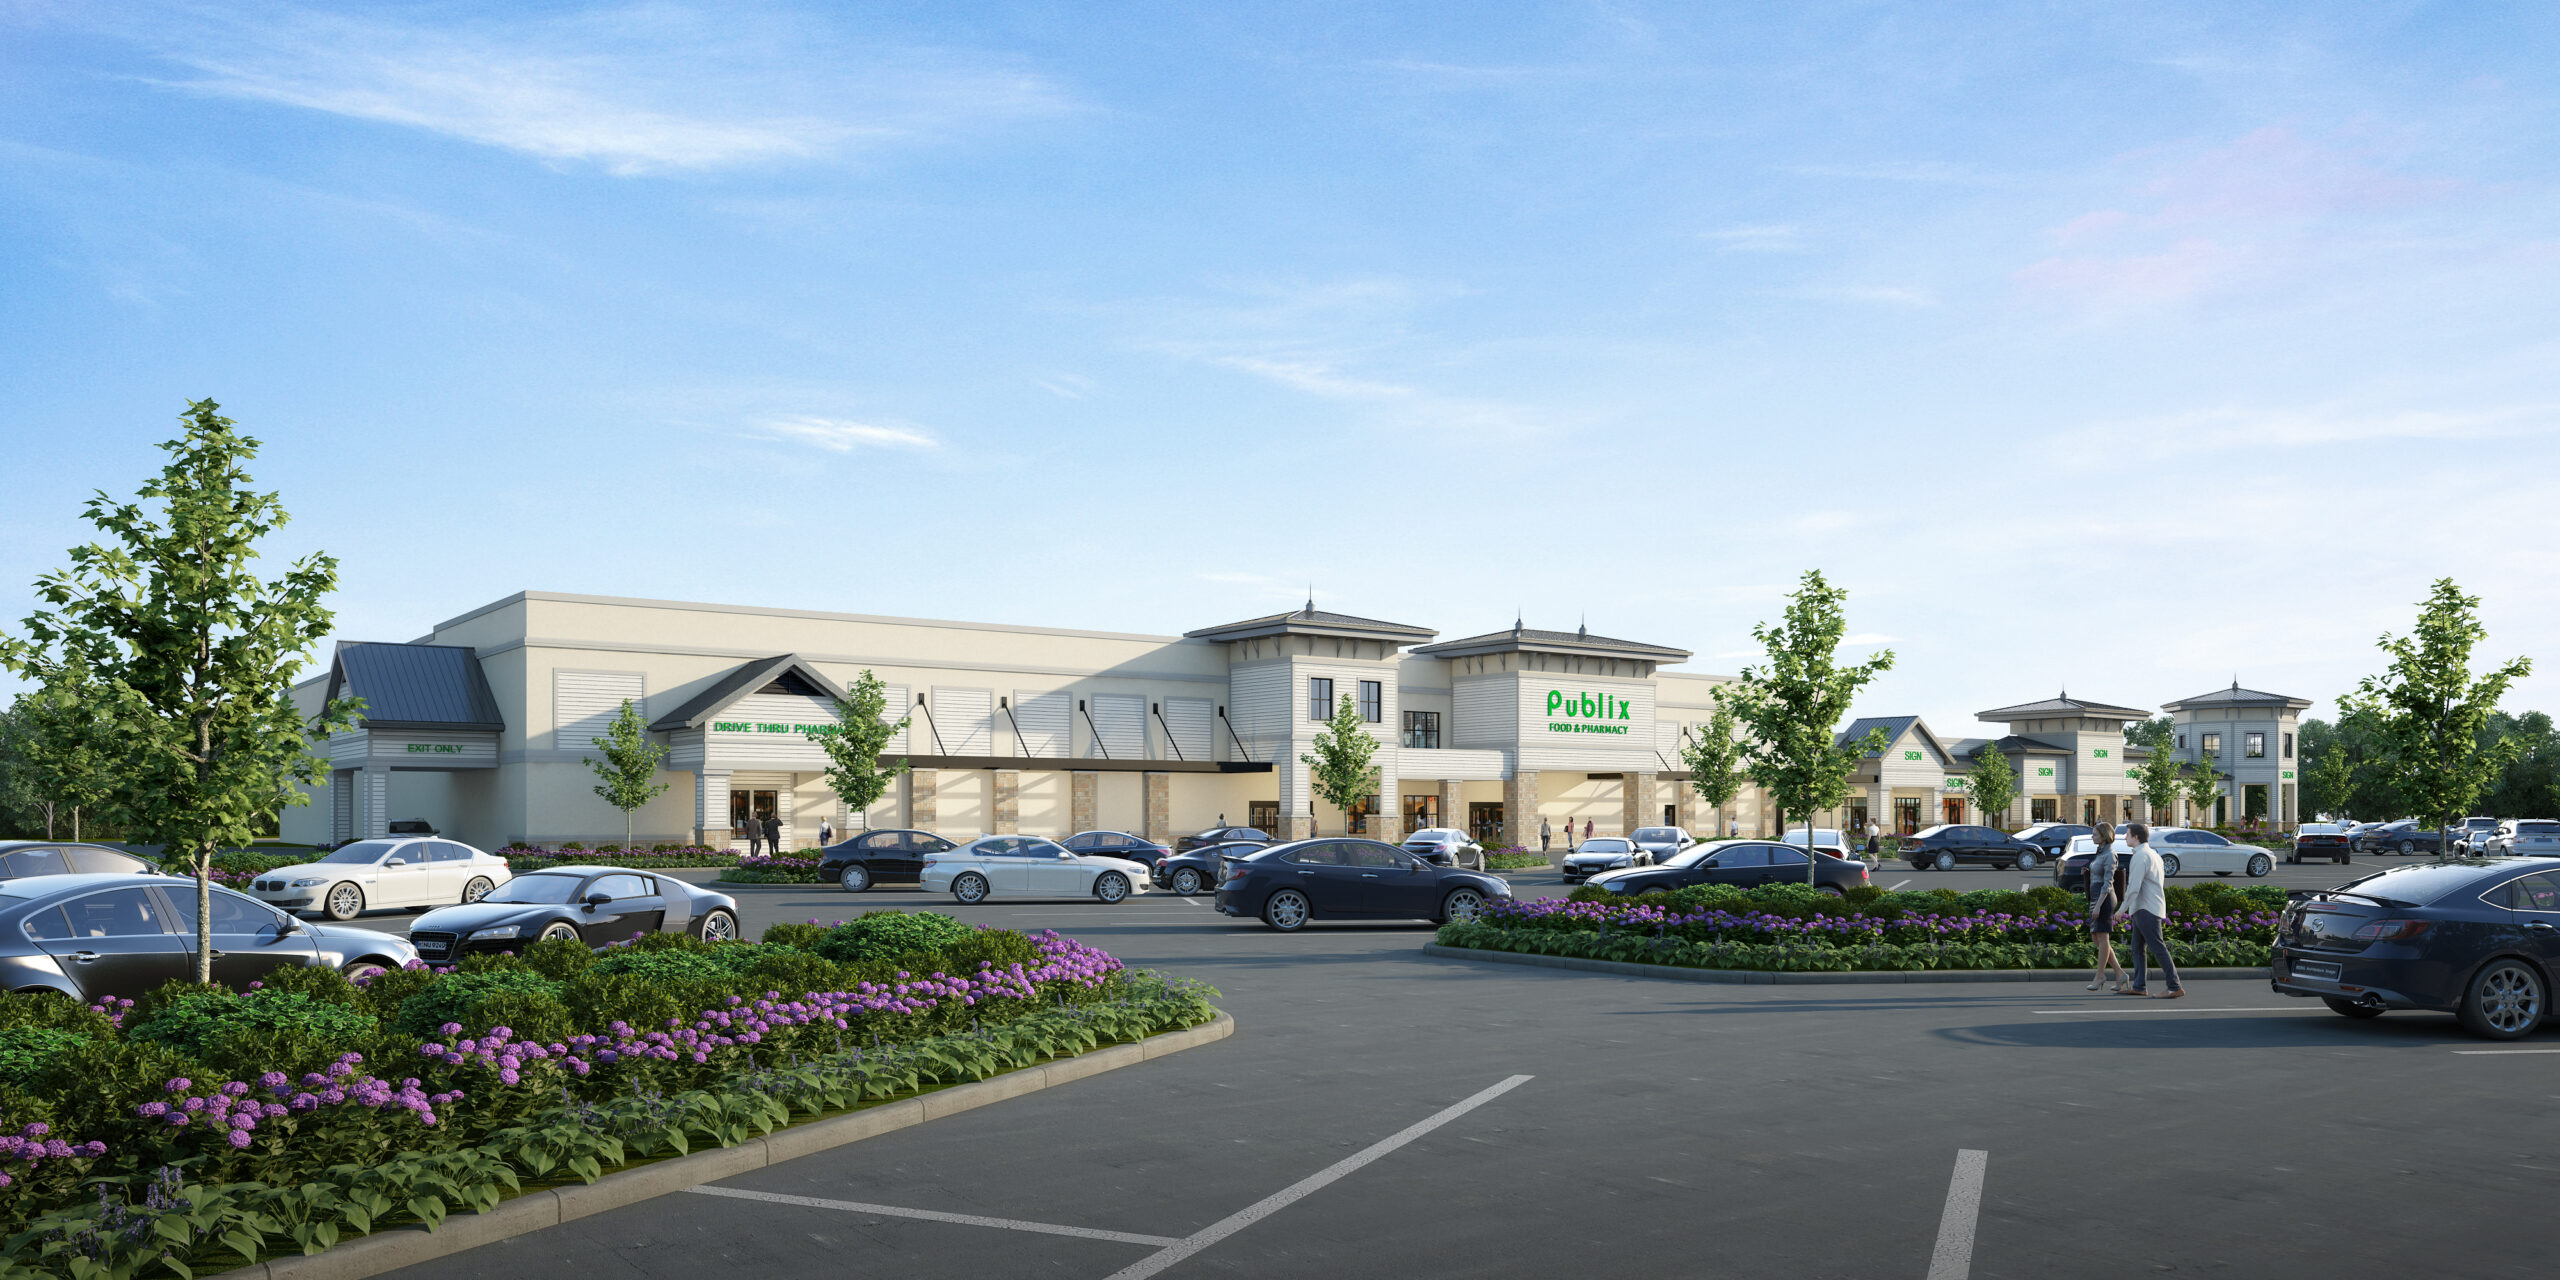 PEBB Enterprises, Falcone Group Partner on Expanded Retail Development Across from Beachwalk Community near Jacksonville